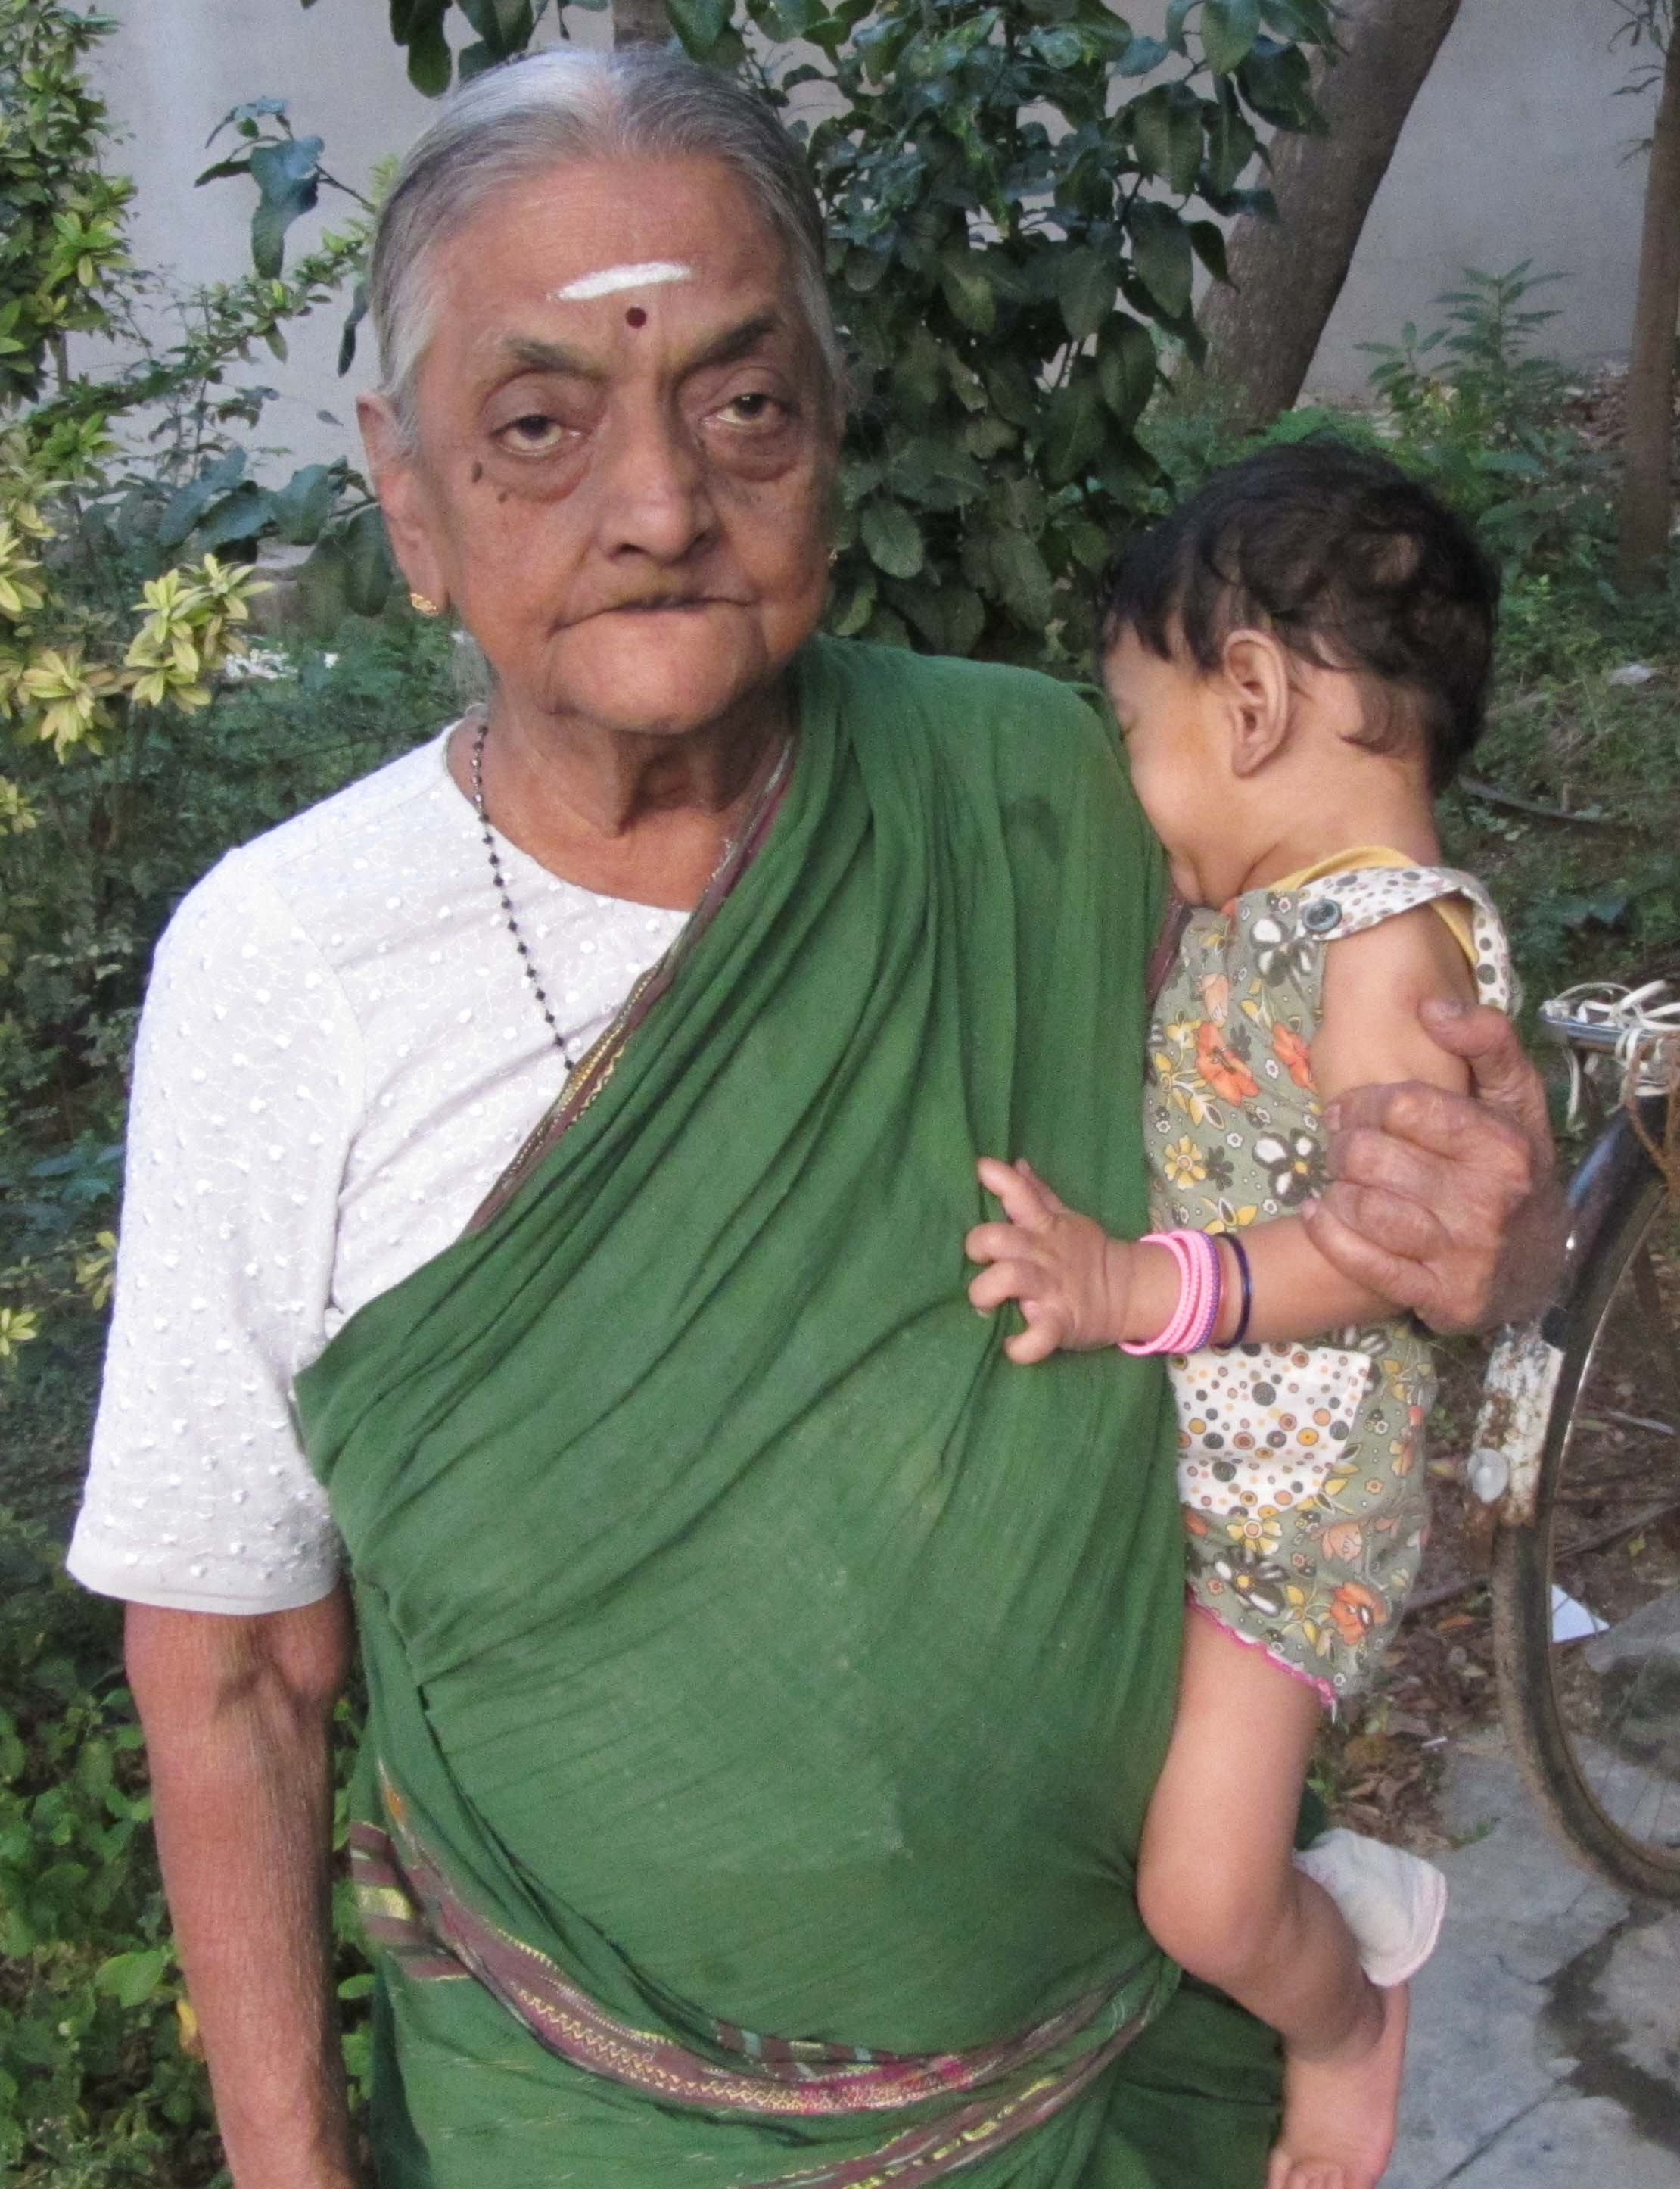 Tamil Nadu Baby Pictures : tamil, pictures, File:Baby, Carrying, Tamil, State,, India, 3.jpg, Wikimedia, Commons